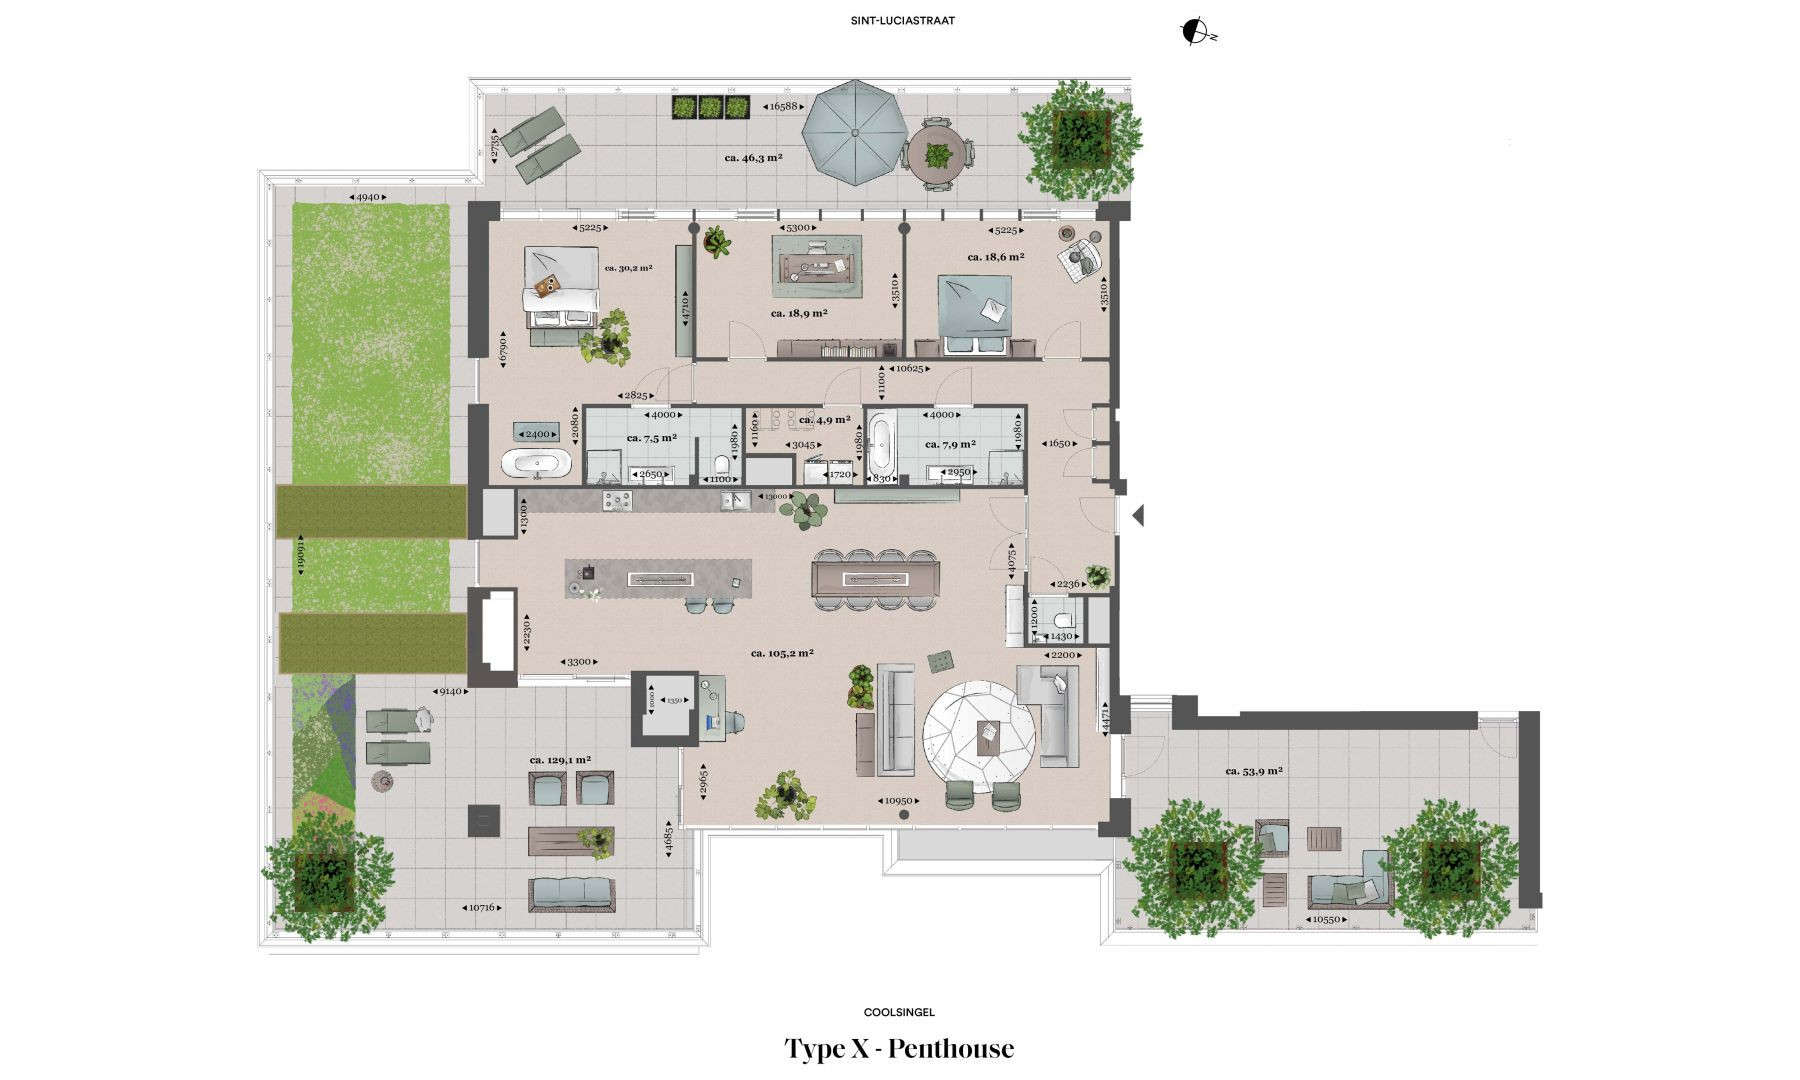 Plattegrond type x Type X - Penthouse N� 75 coolsingel